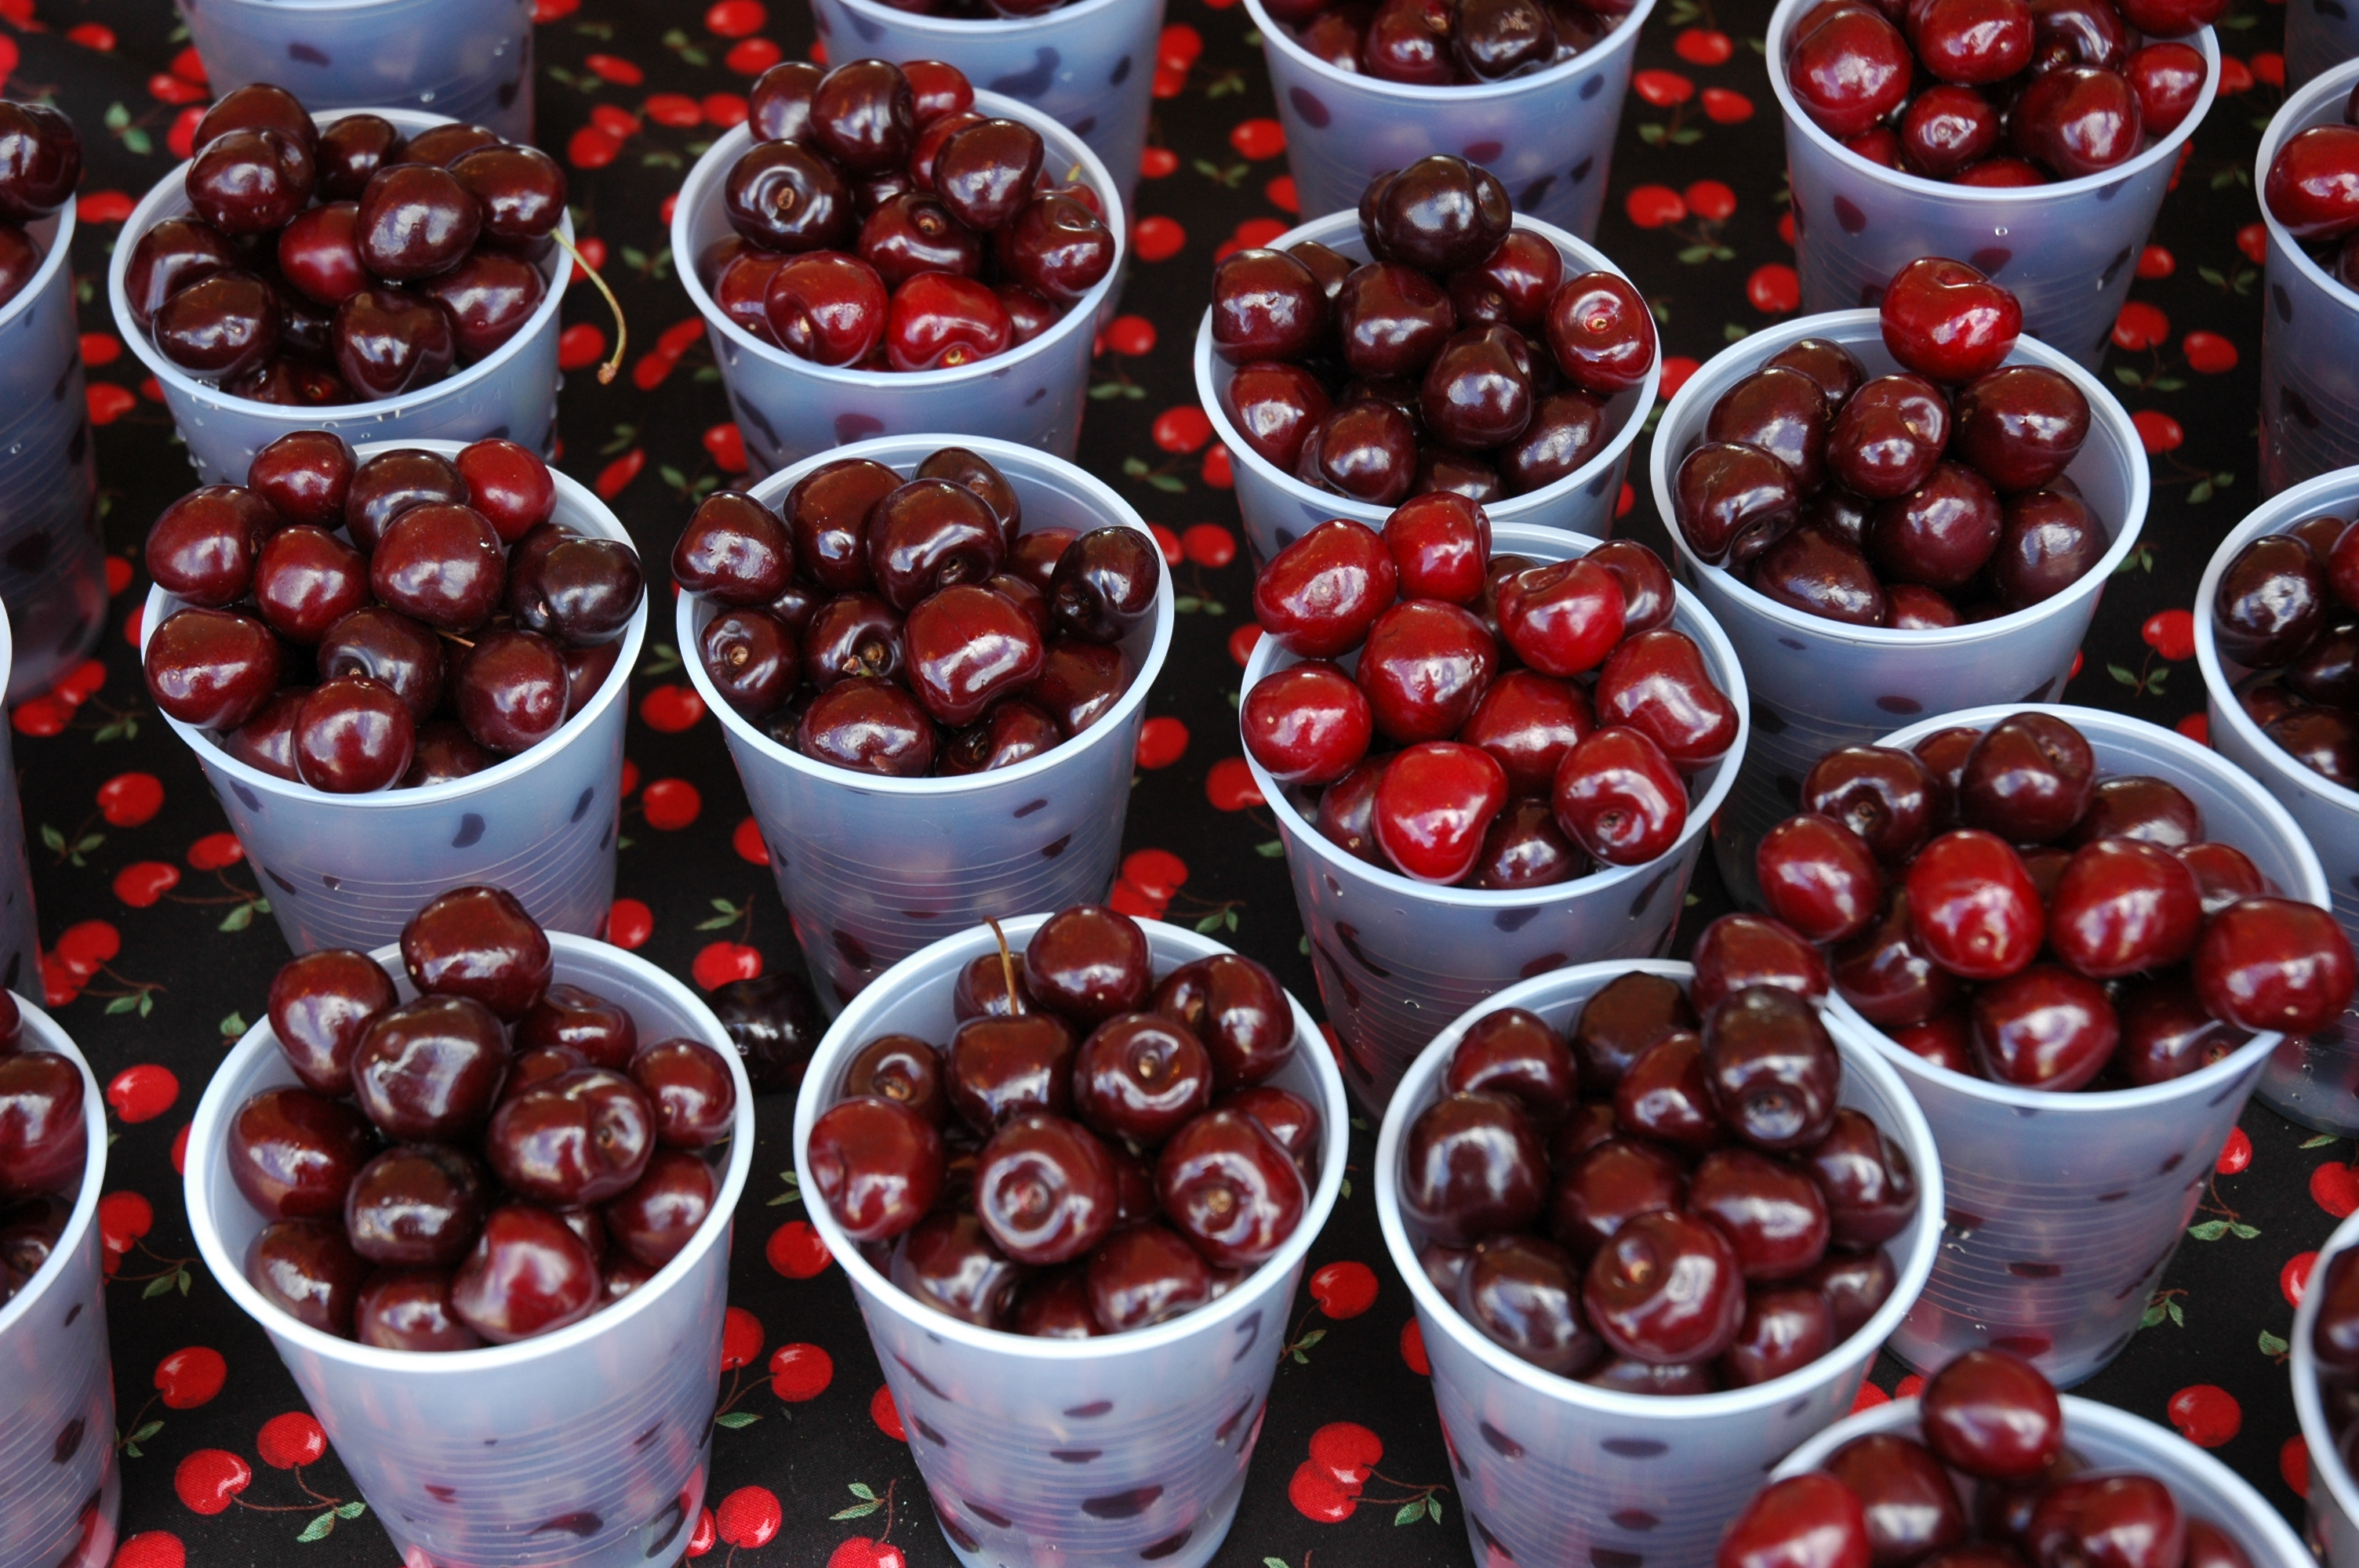 Traverse City National Cherry Festival | Food, Music & Events